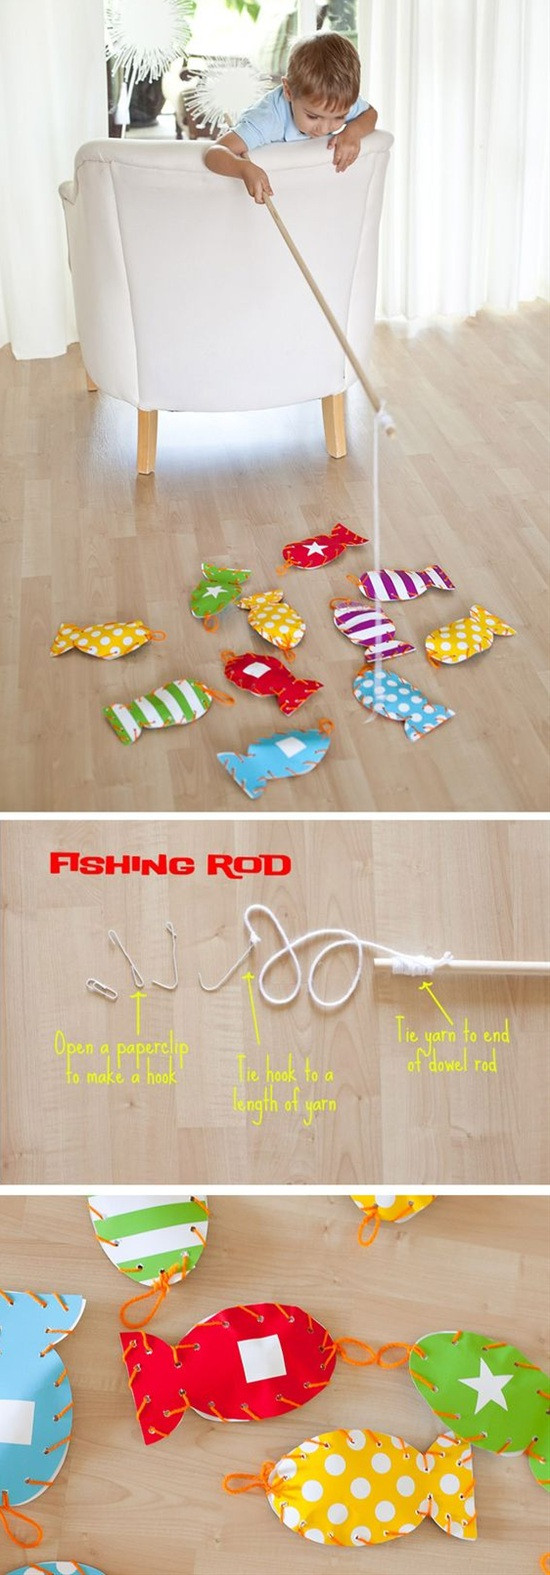 Best ideas about DIY Activities For Kids . Save or Pin DIY Kids Games and Activities for Indoors or Outdoors Now.